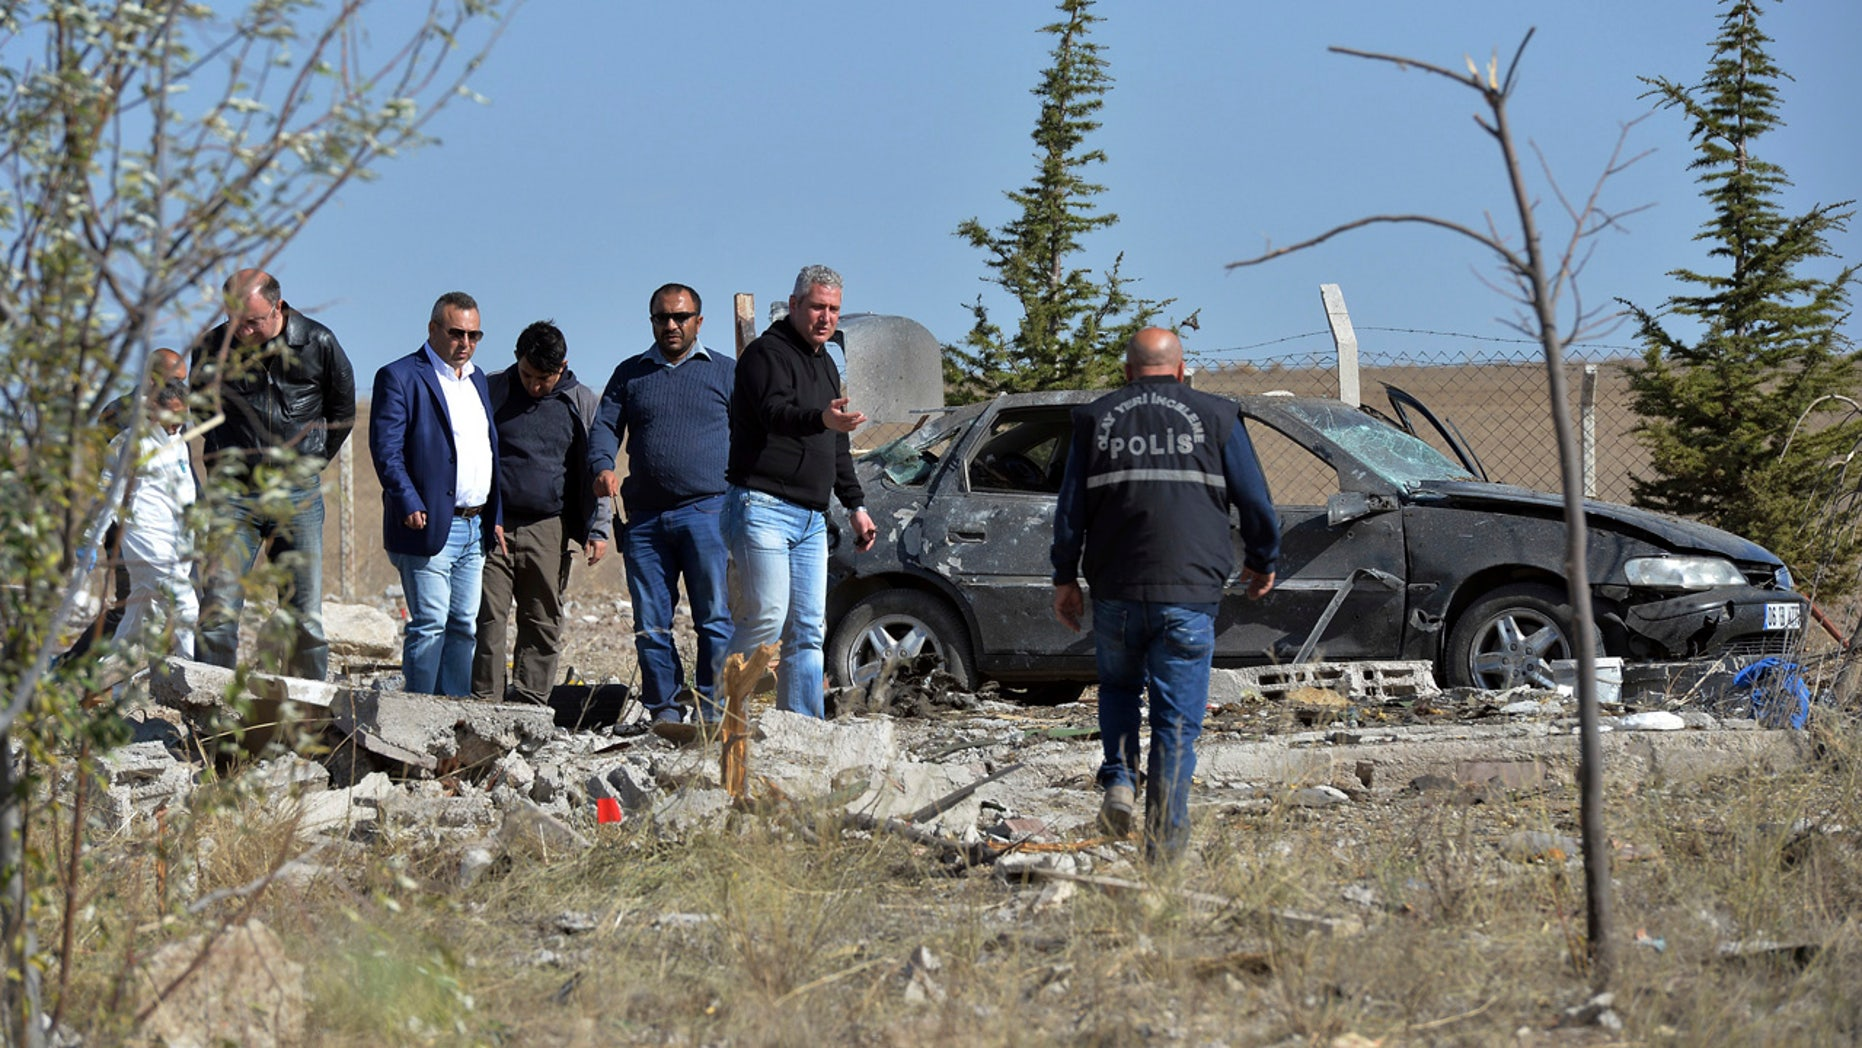 Oct. 8, 2016: Police forensic officers work at the scene after suicide bombers blew themselves up in Haymana in the outskirts of the capital Ankara, Turkey.